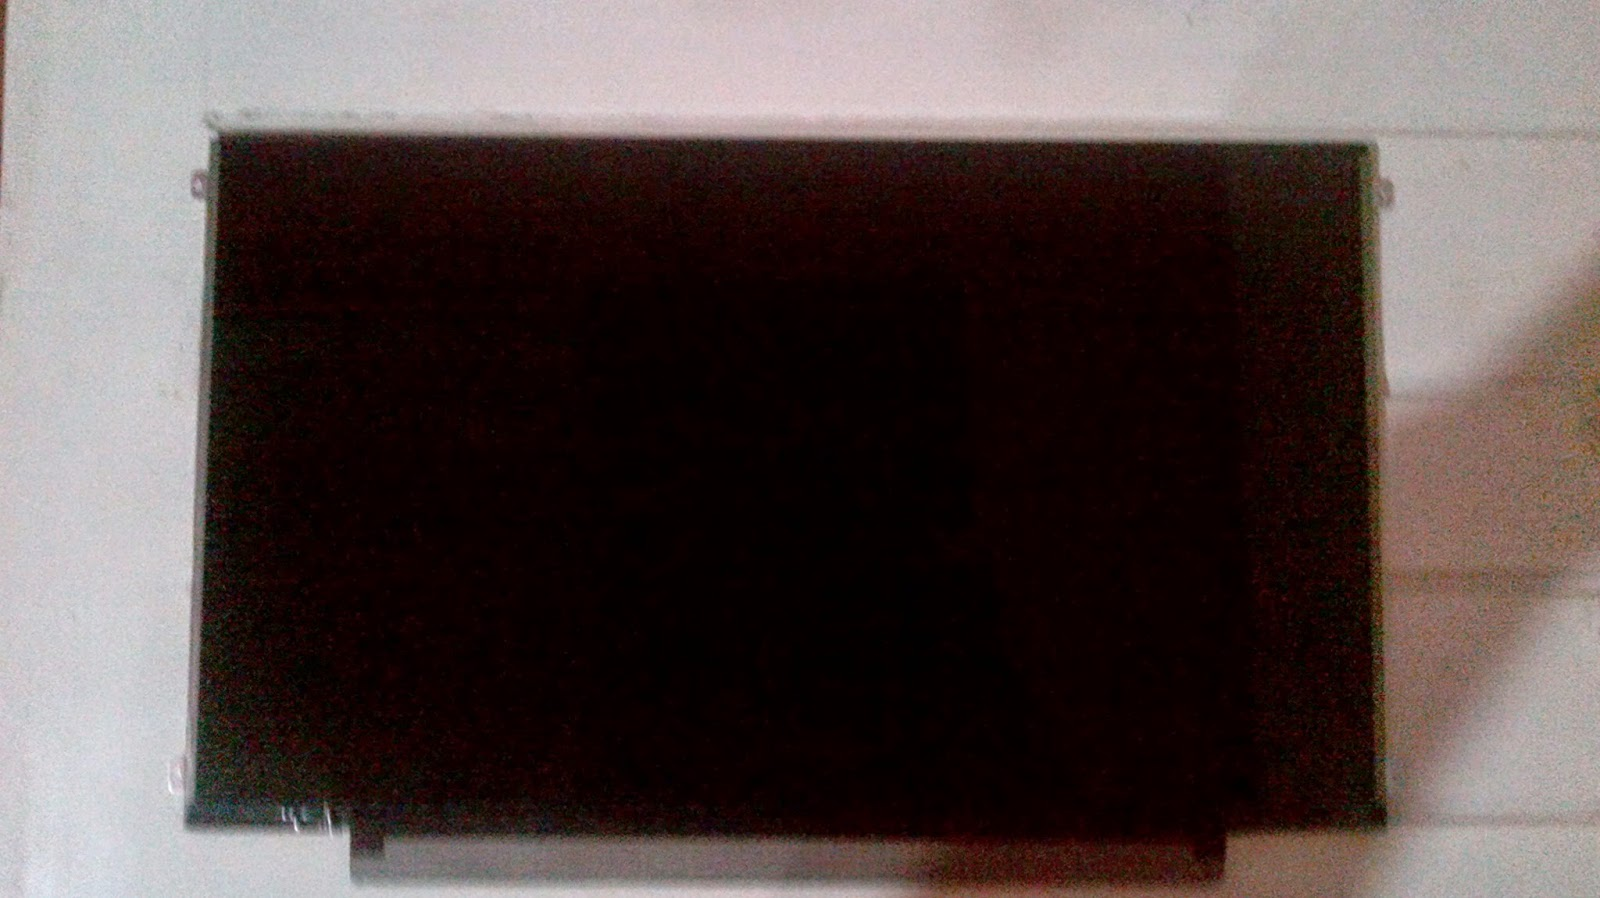 sparepart laptop second led 13,4 slim lepasan laptop MSI